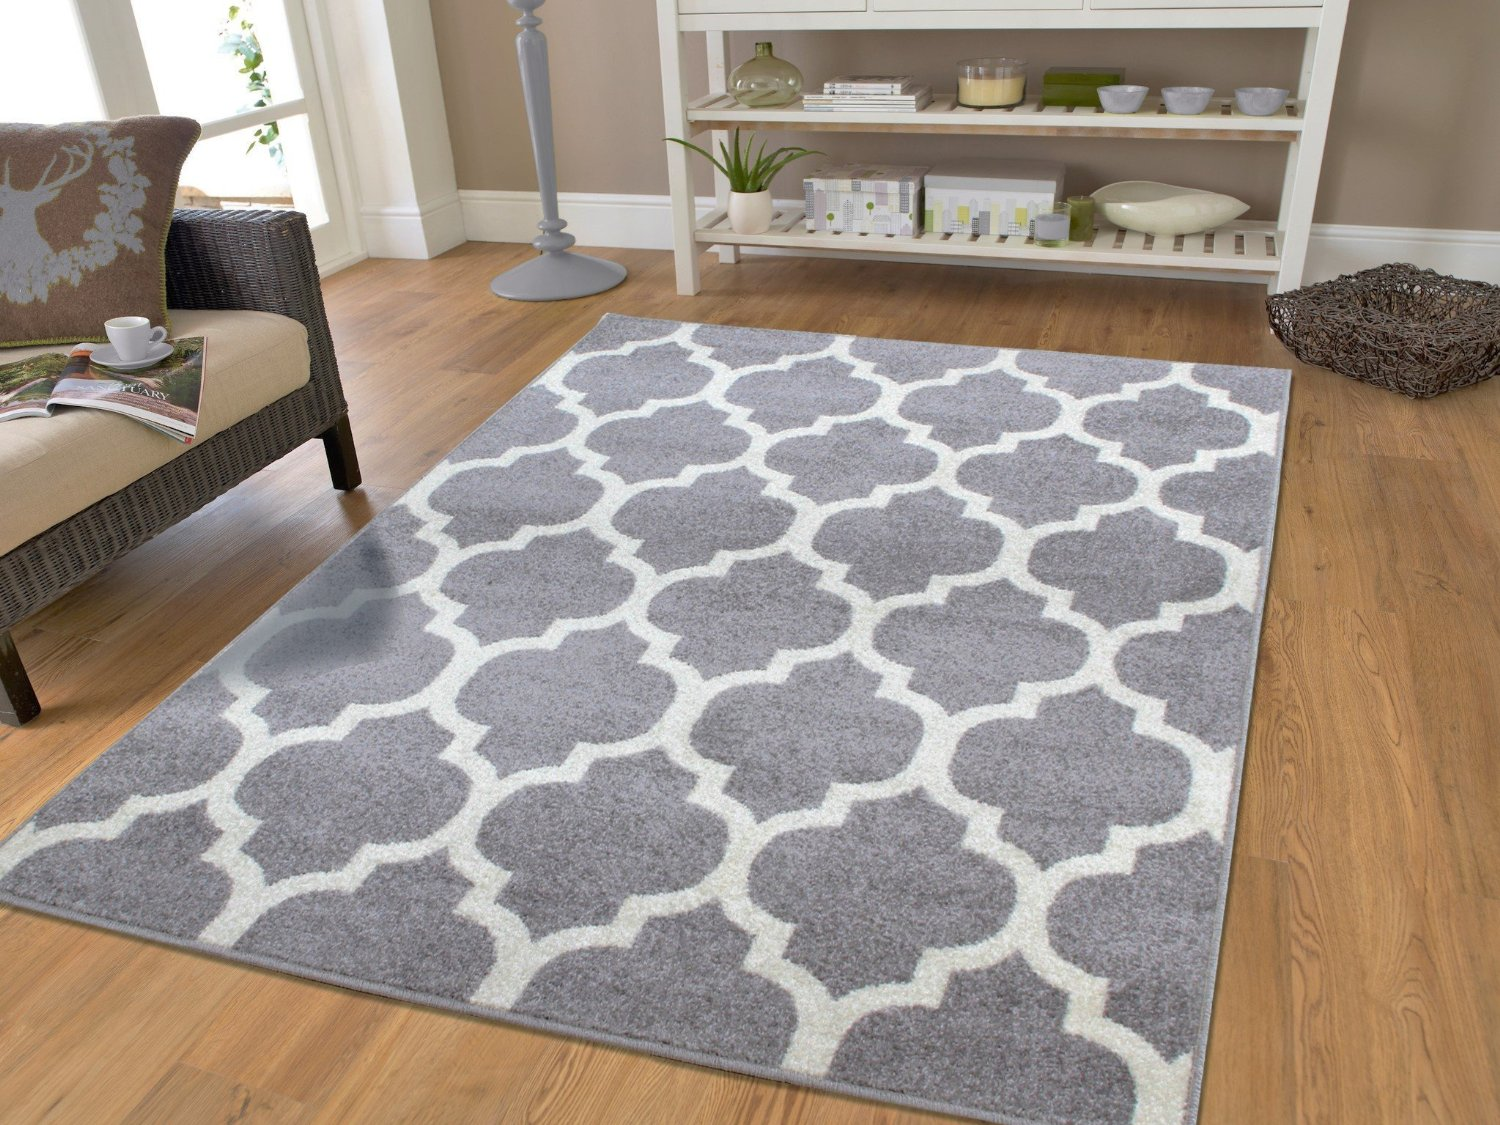 Superior Fashion Gray Rugs For Bedroom Grey Rugs 5x7 Dining Living Room Rugs For  Under The Table